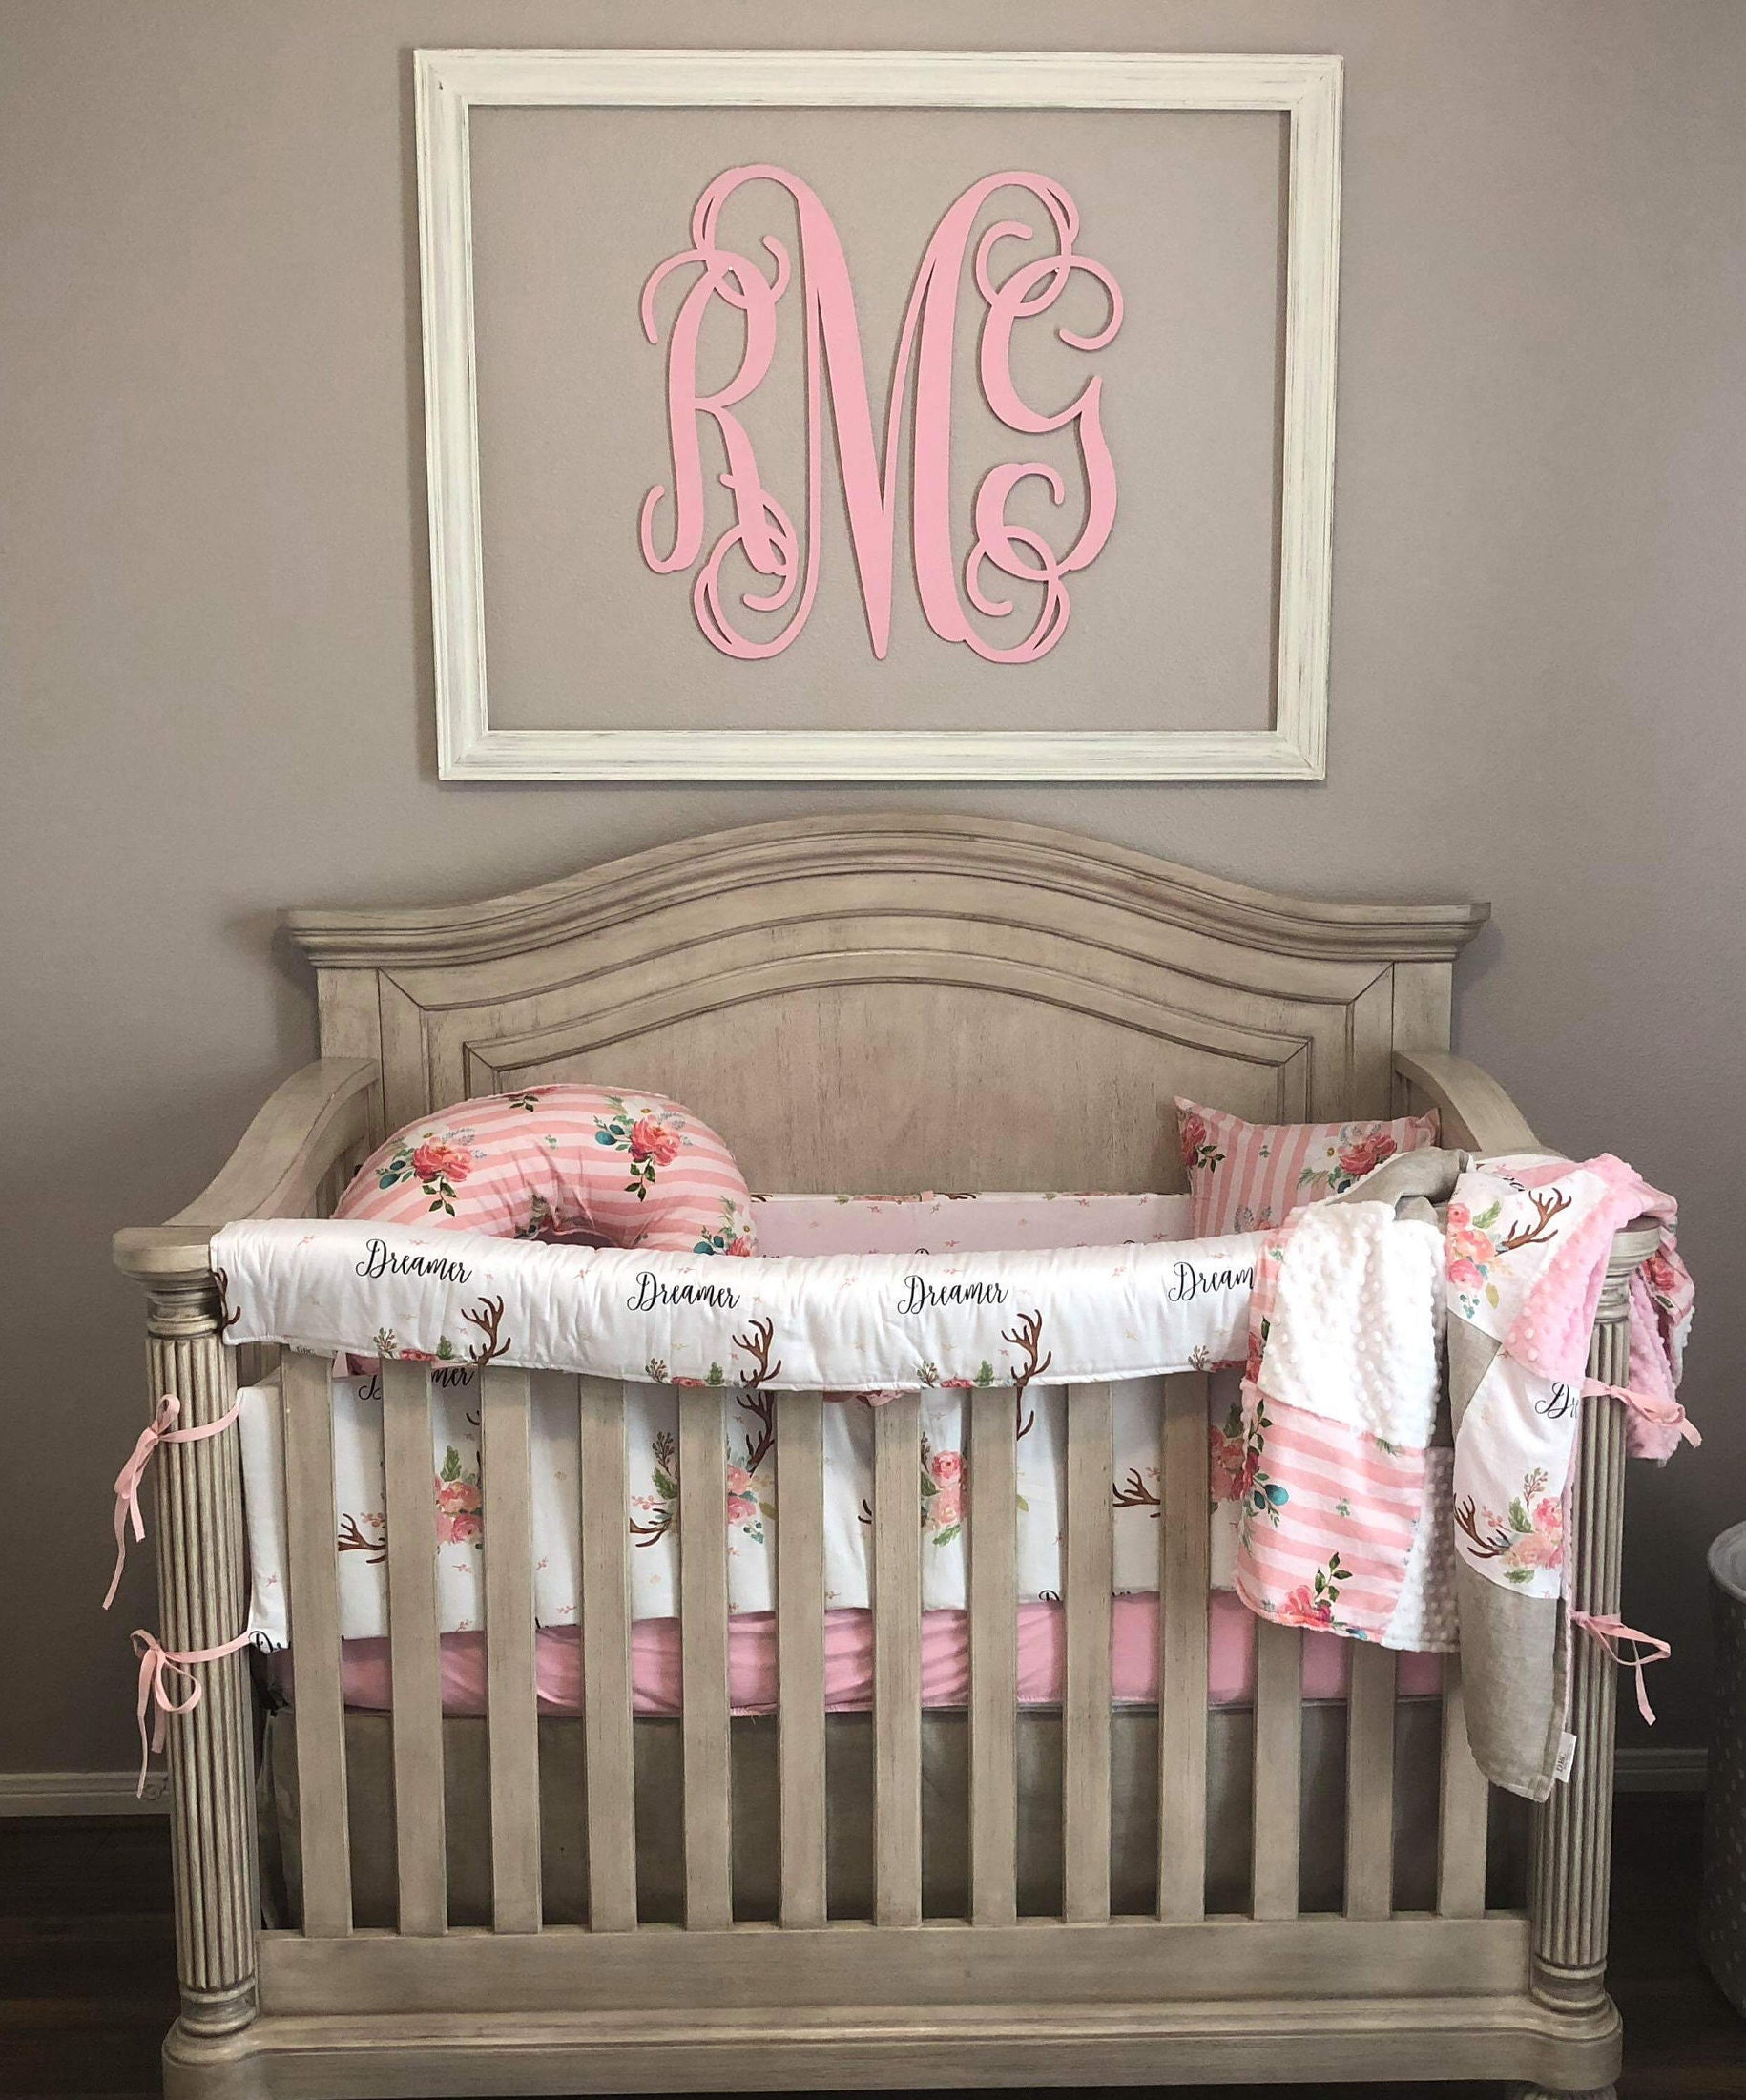 exceptional Pink Minky Crib Bedding Part - 18: Baby Girl Crib Bedding - Floral Antlers, Striped Flowers, Brushed Tan,  White Minky, and Blush Minky Crib Baby Bedding Ensemble